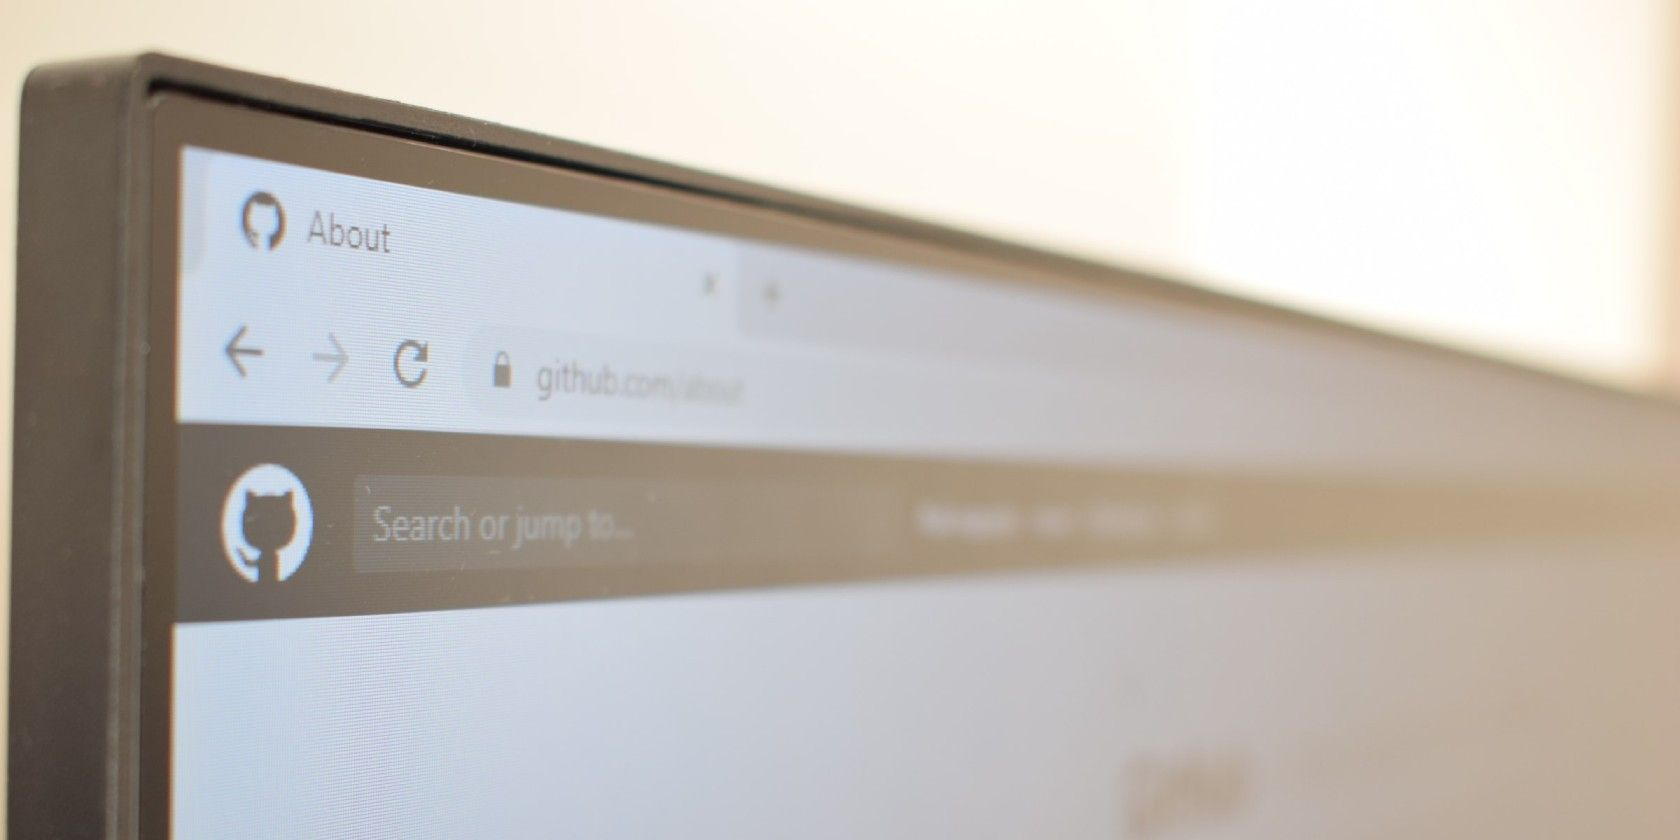 5 Chrome Alternatives to Browse the Web in Unique Ways